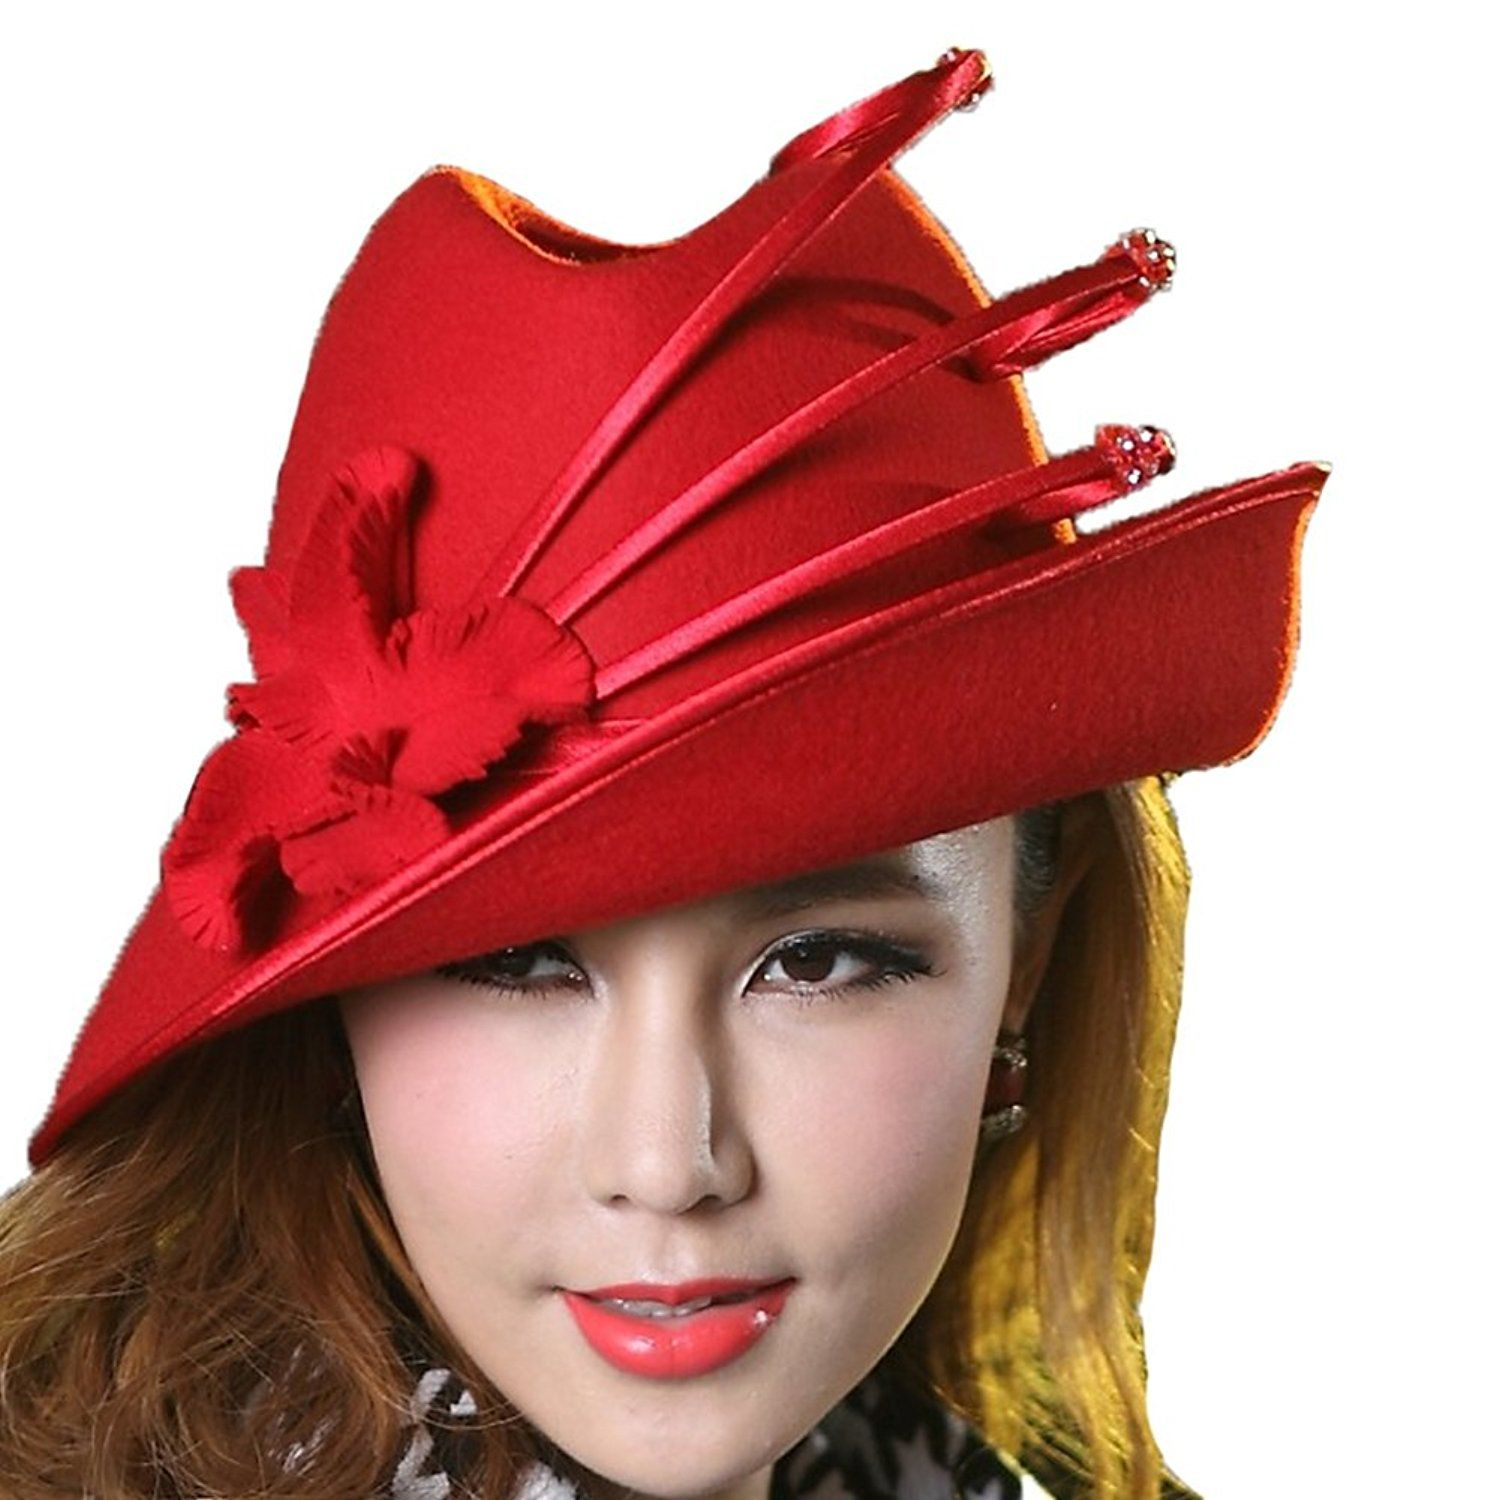 da8b4a5a164 June s Young Fashion Wool felt Hats Women winter Hat Fedoras New Arrival  (Red) at Amazon Women s Clothing store